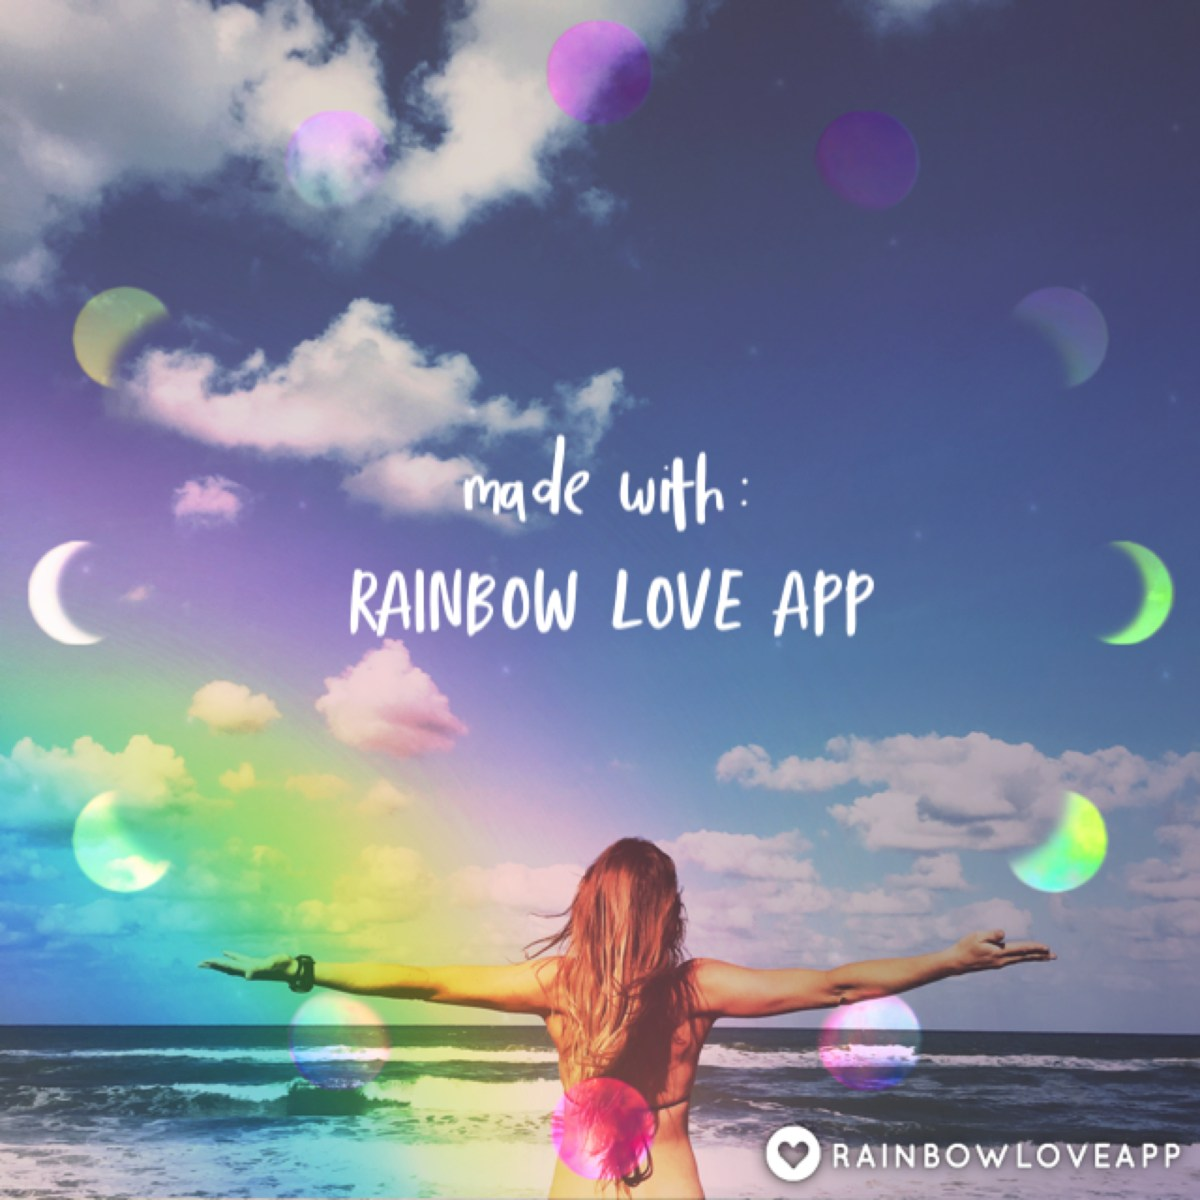 rainbow-love-app-best-photo-filters-and-rainbows-rainbow-filter-4-moons-filter-6-moon-filter-7